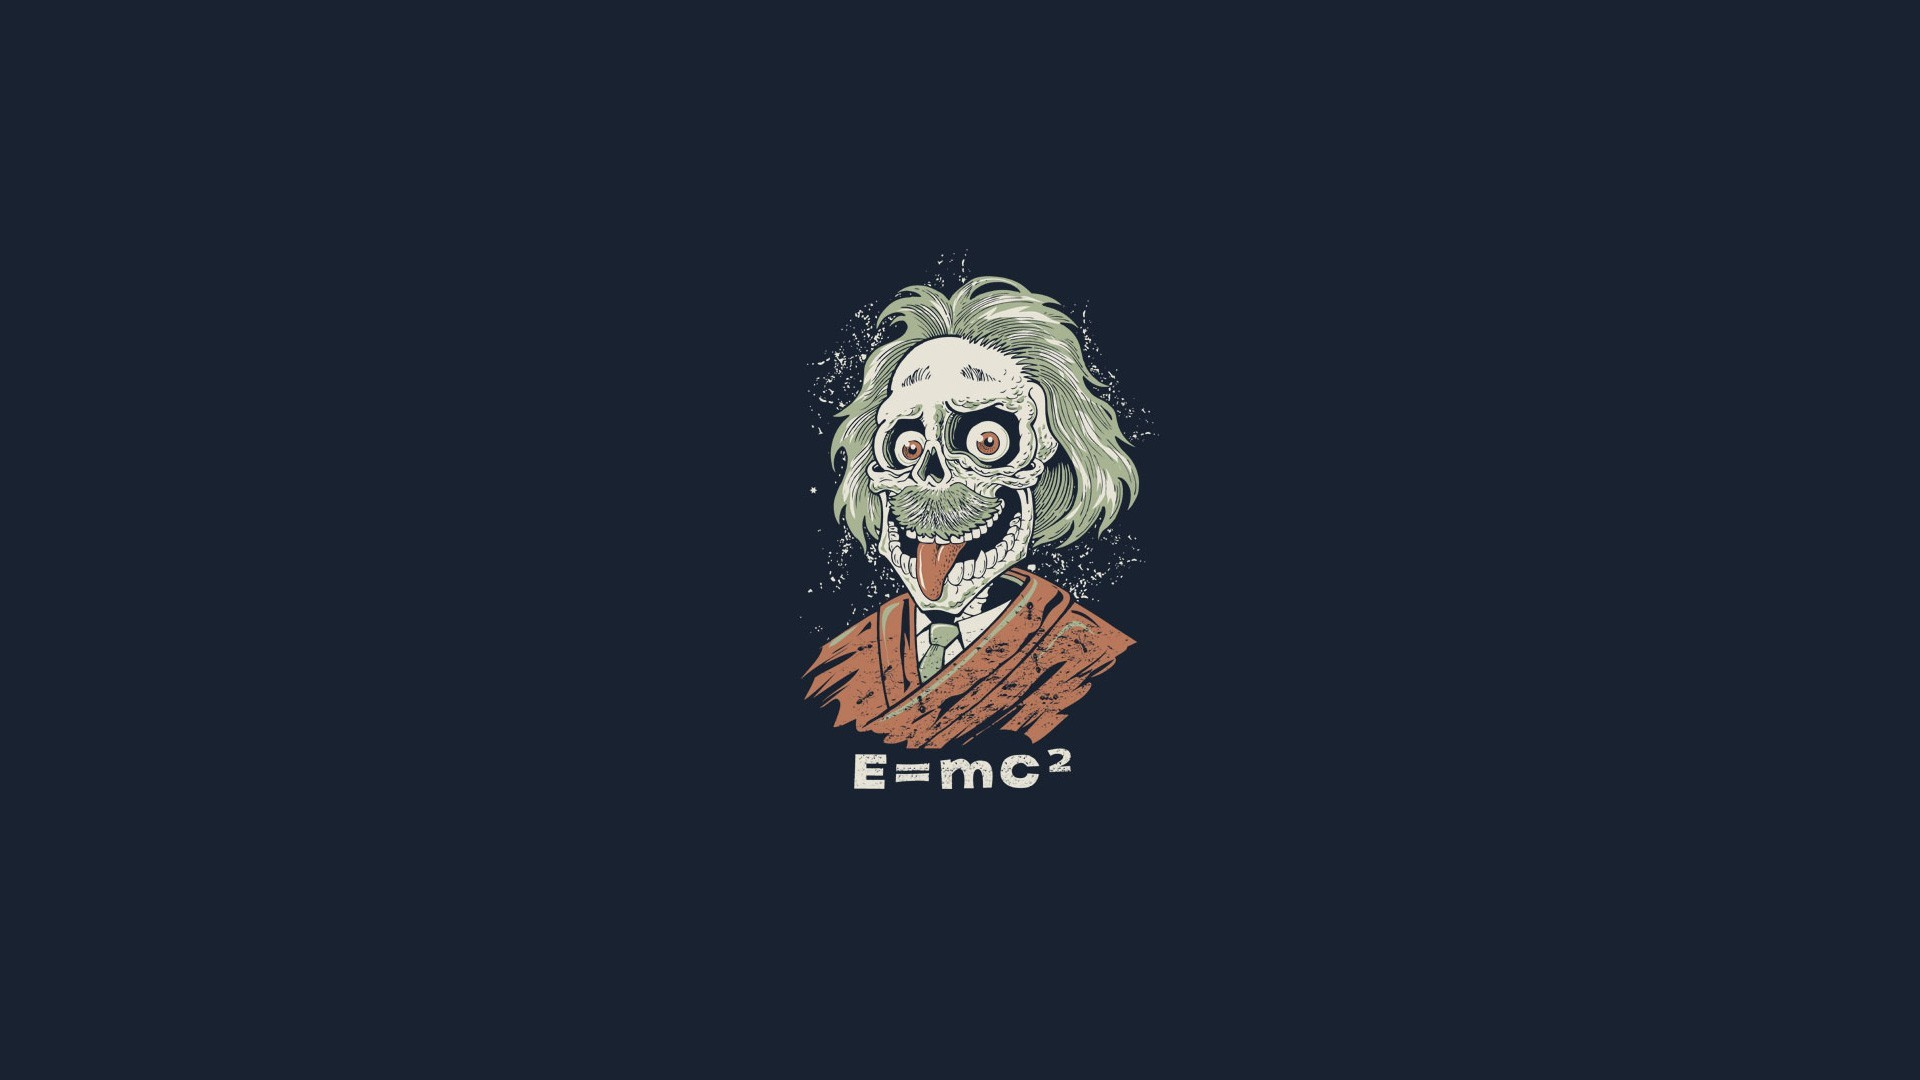 Black Cartoon Wallpaper 55 Image Collections Of: Cool Skeleton Wallpapers (45+ Images